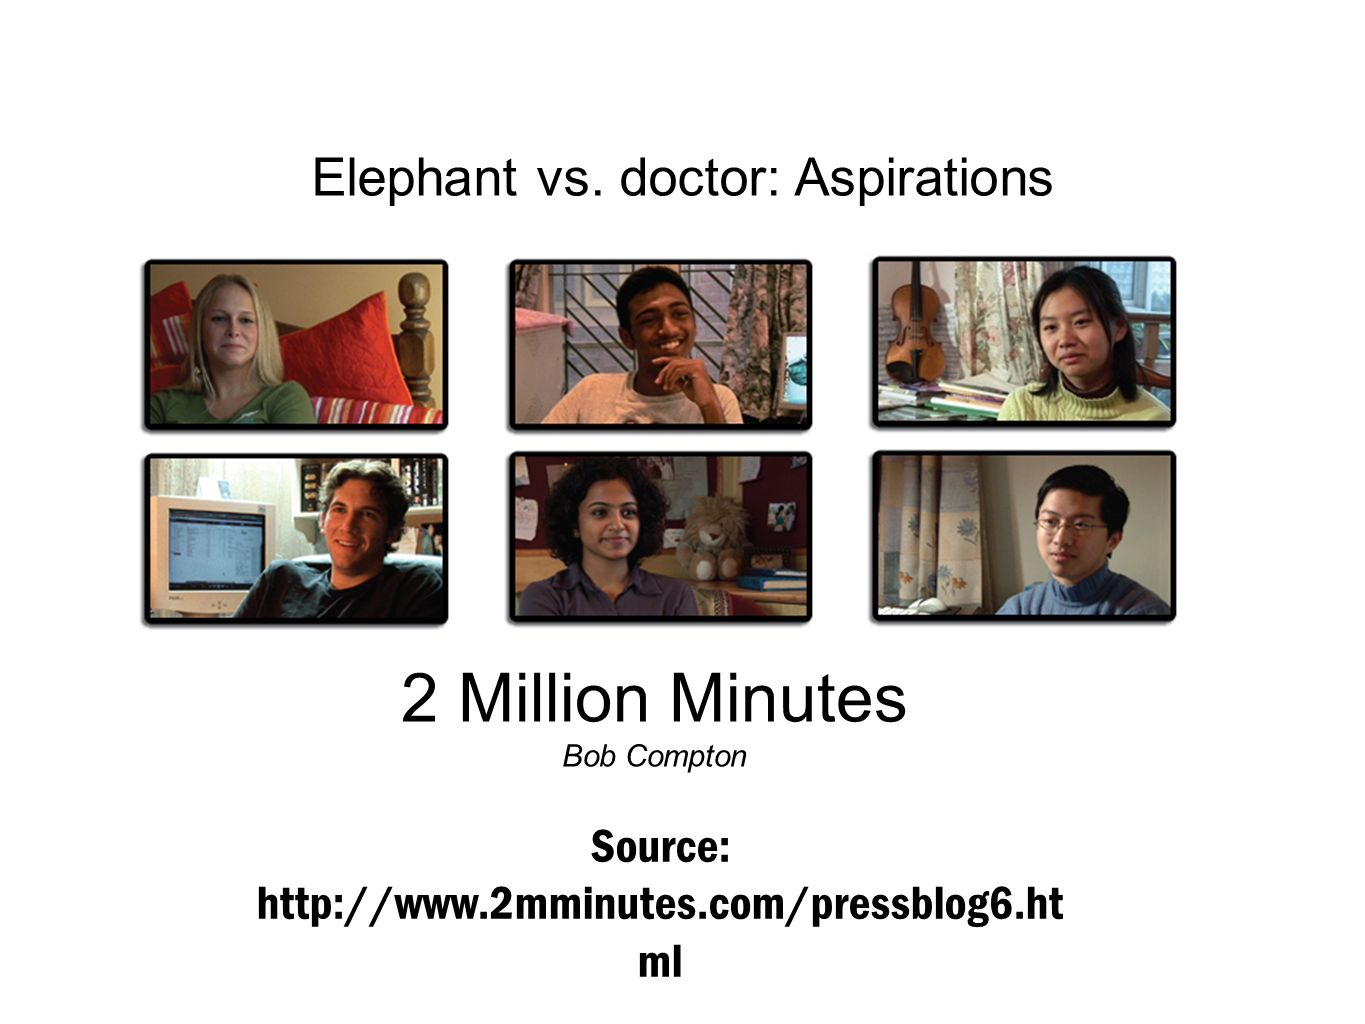 2 Million Minutes Elephant vs. doctor: Aspirations